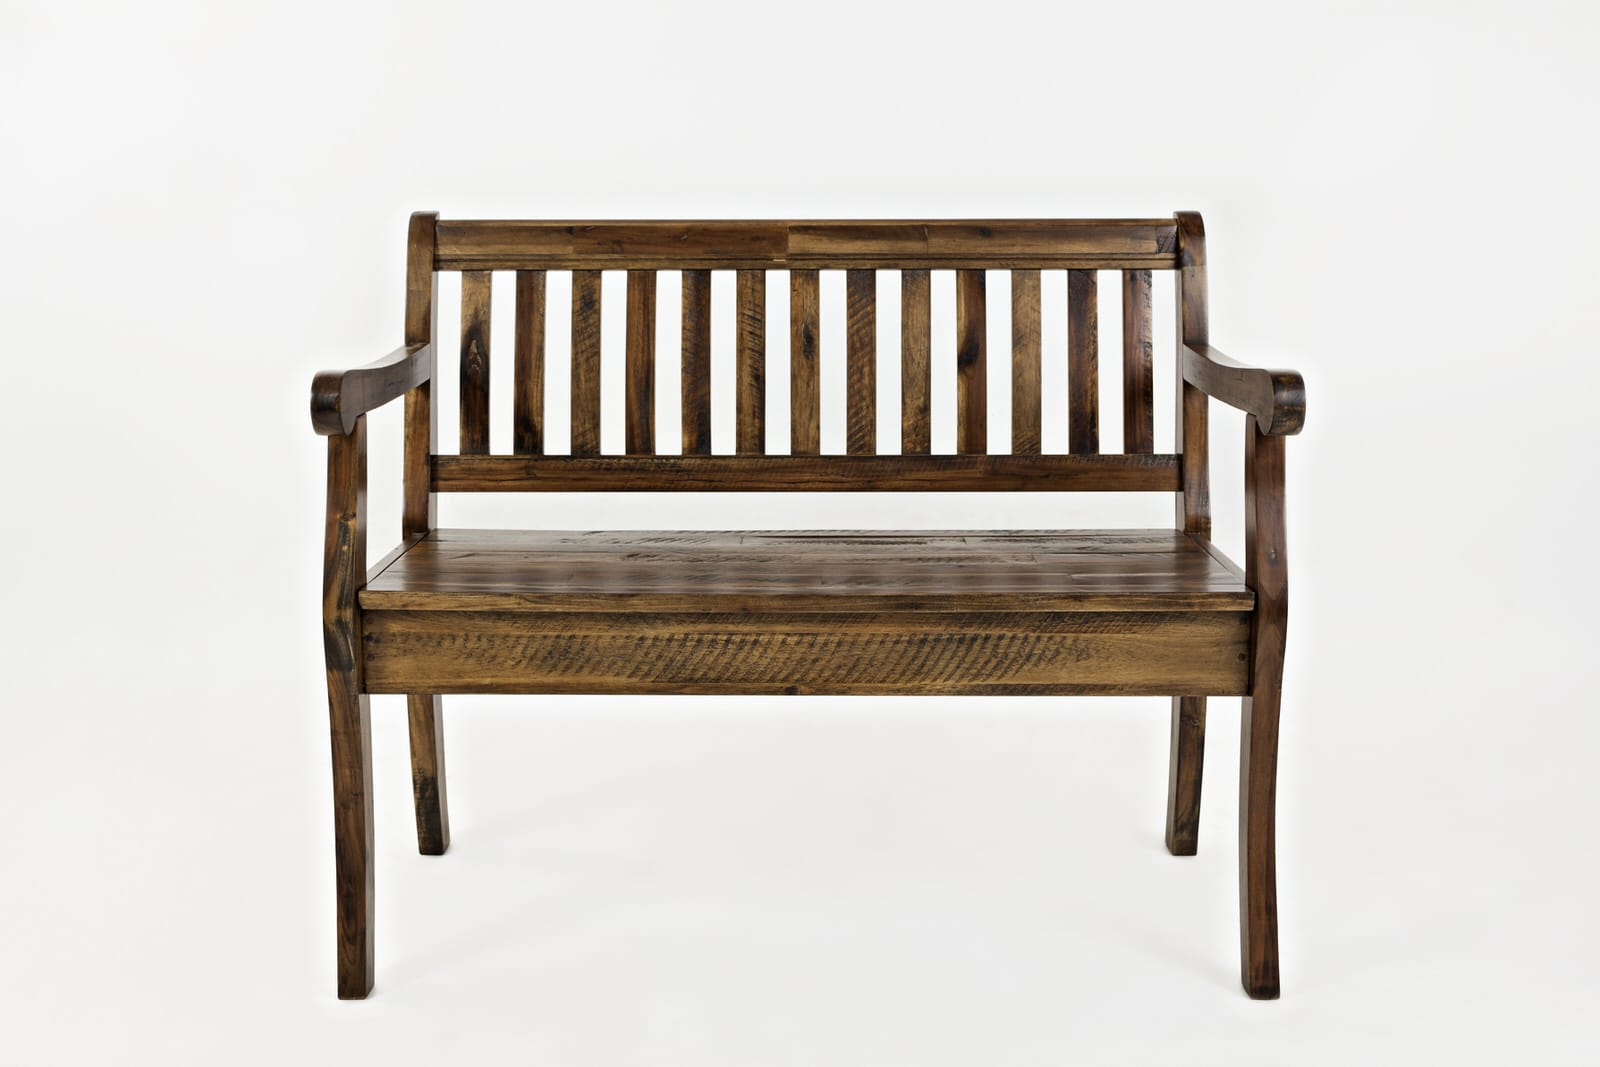 Artisans Craft Dakota Oak Storage Bench By Jofran Furniture